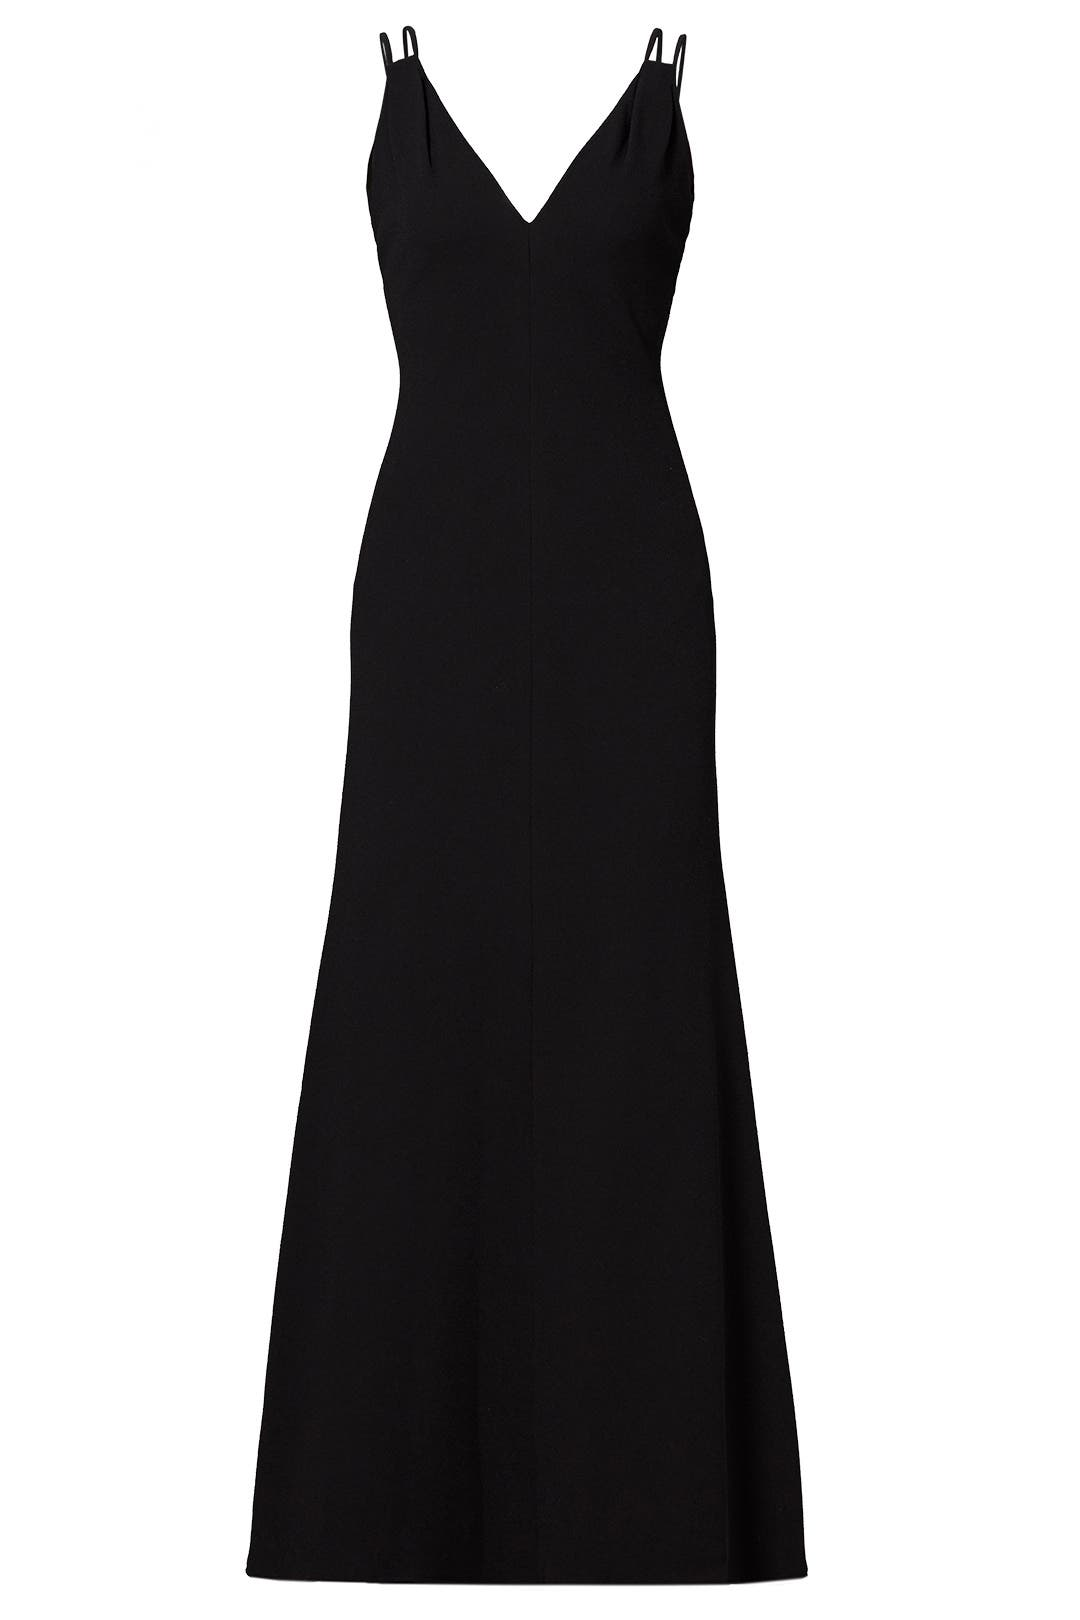 Black Shiloh Gown by Carmen Marc Valvo for $115 - $135 | Rent the Runway